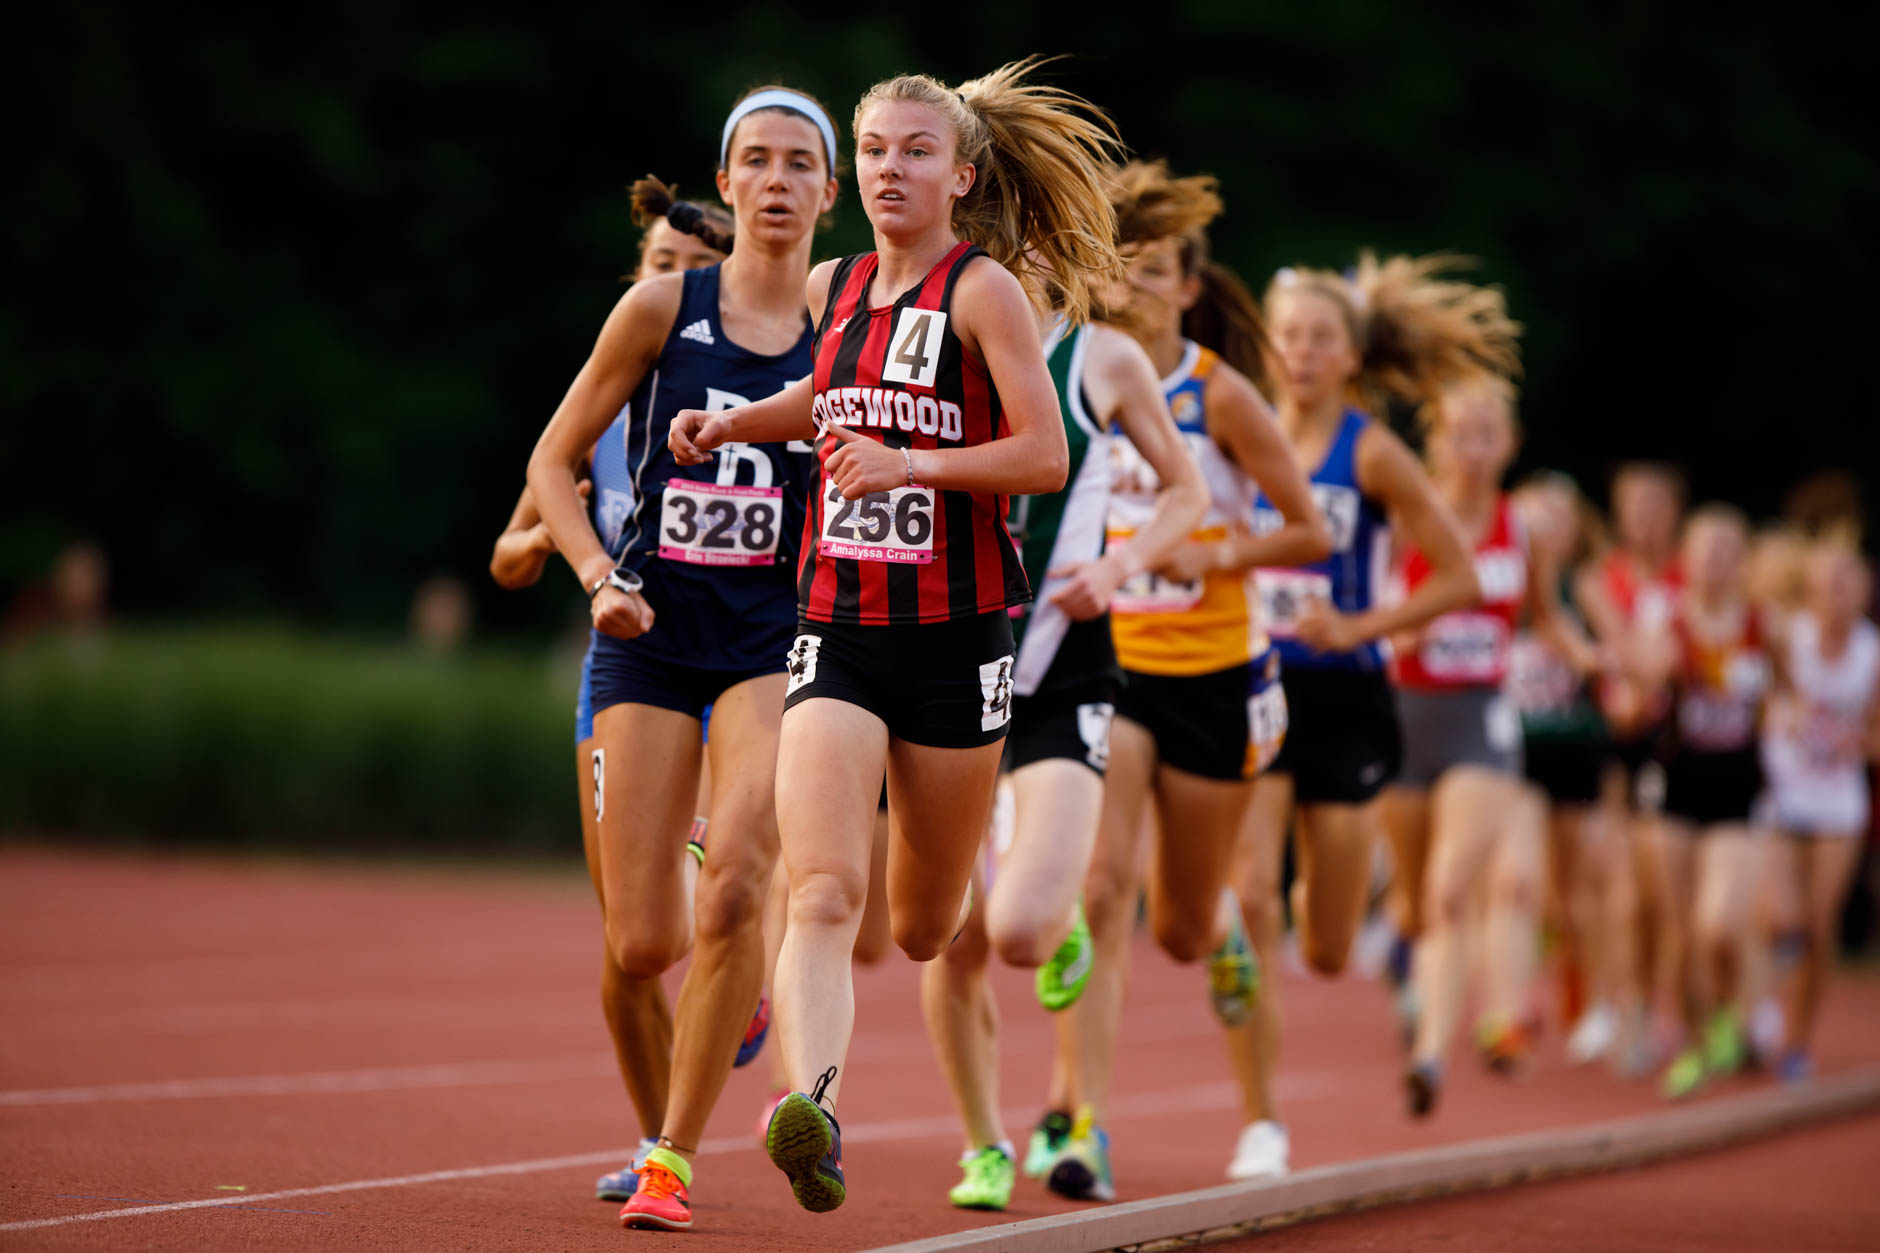 Edgewood's Annalyssa Crain leads the pack early in the 3200 meter run during the IHSAA Girls Track and Field State Finals in Bloomington, Indiana on Saturday, June 1, 2019. (James Brosher for The Herald-Times)